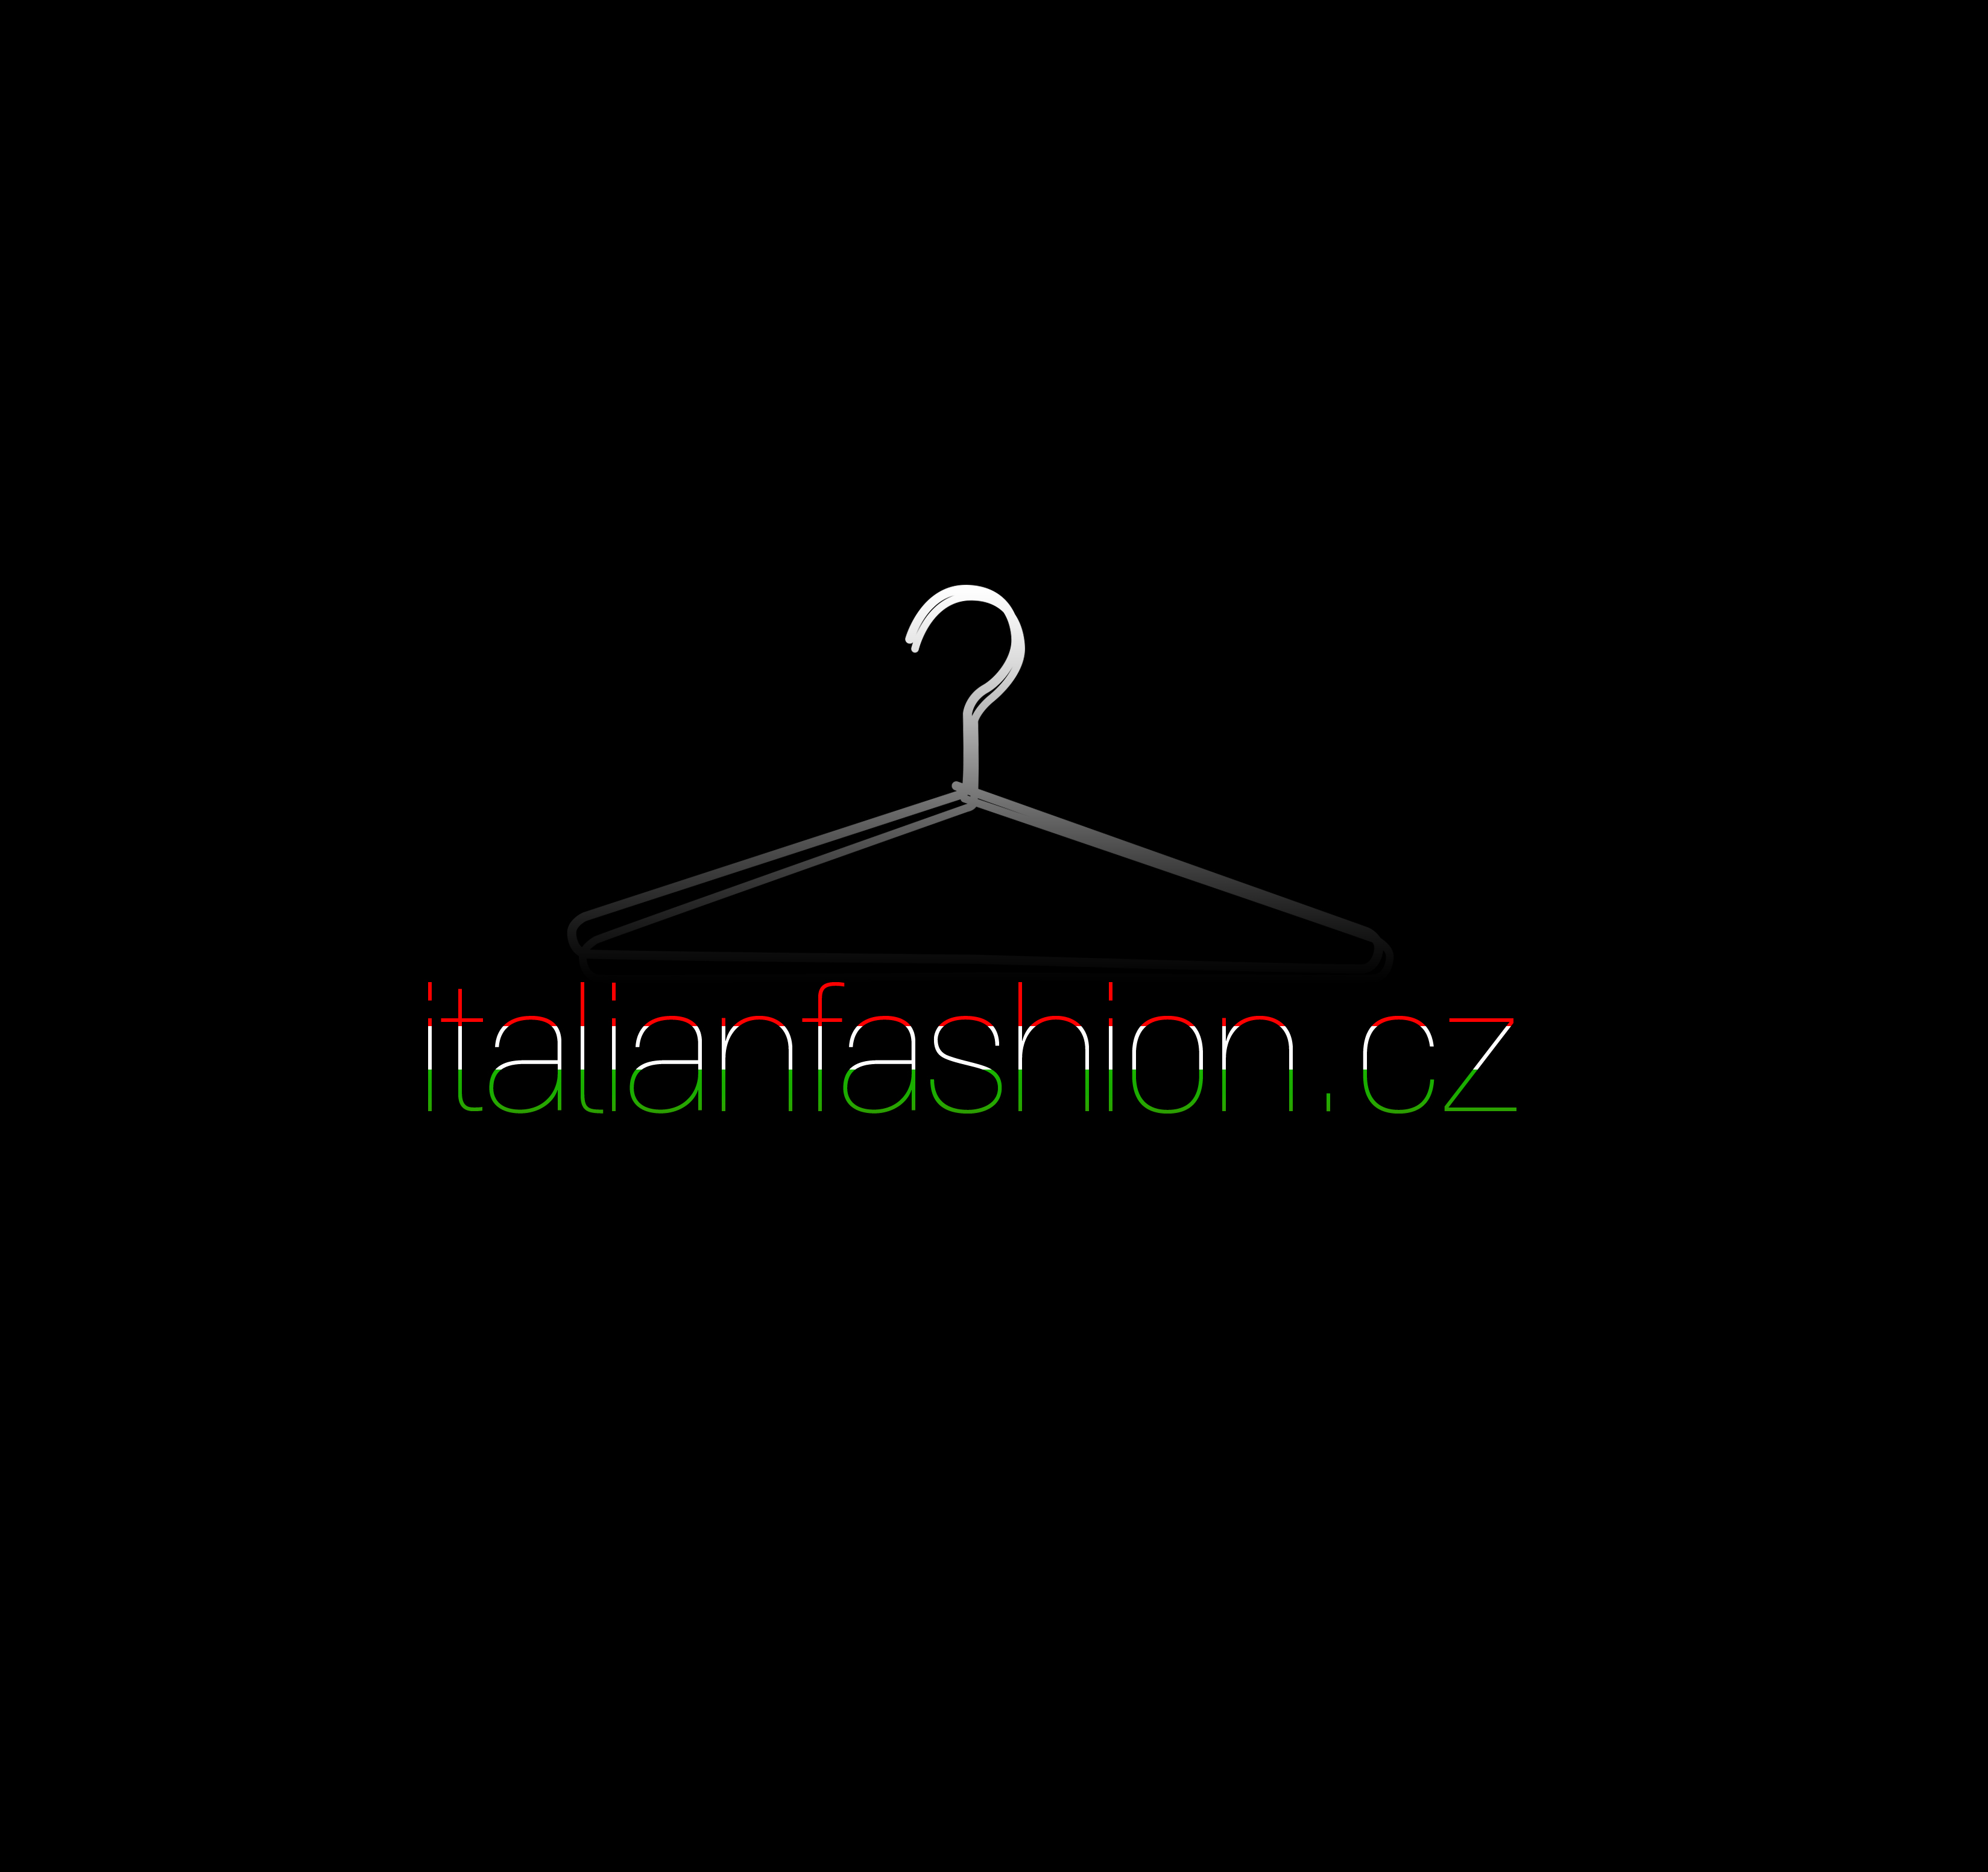 Logo Design by madis - Entry No. 10 in the Logo Design Contest Logo for Web Page ItalianFashion.cz.